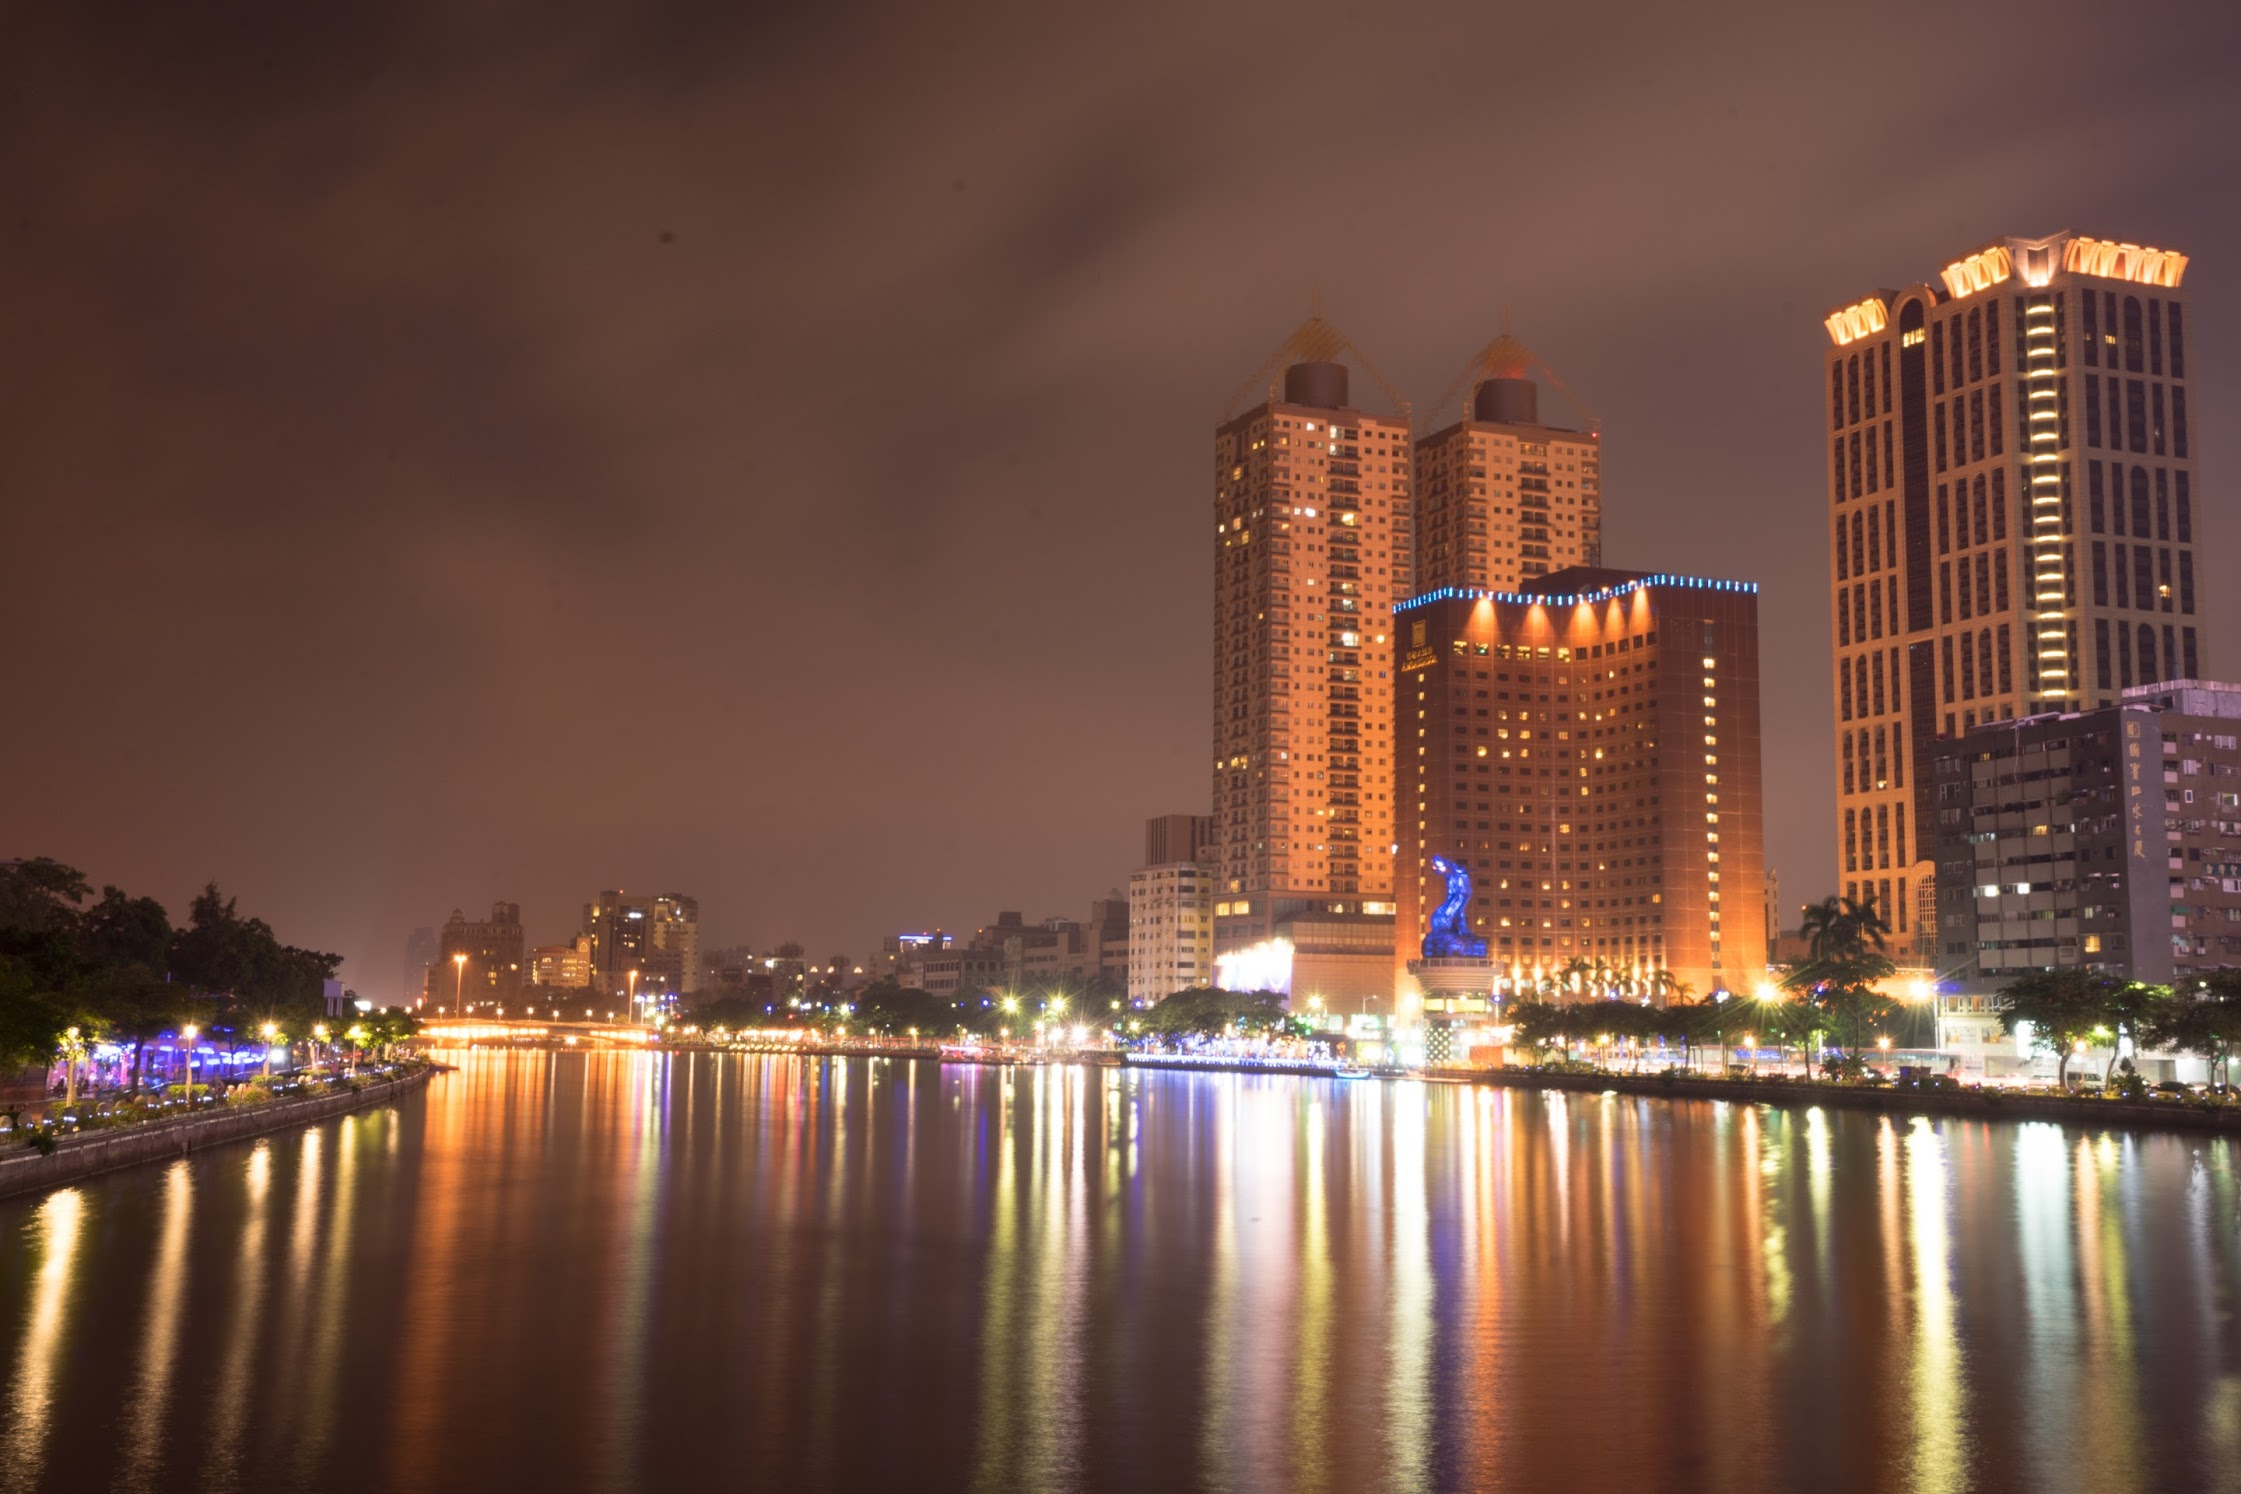 Taiwan Kaohsiung Love River evening view1